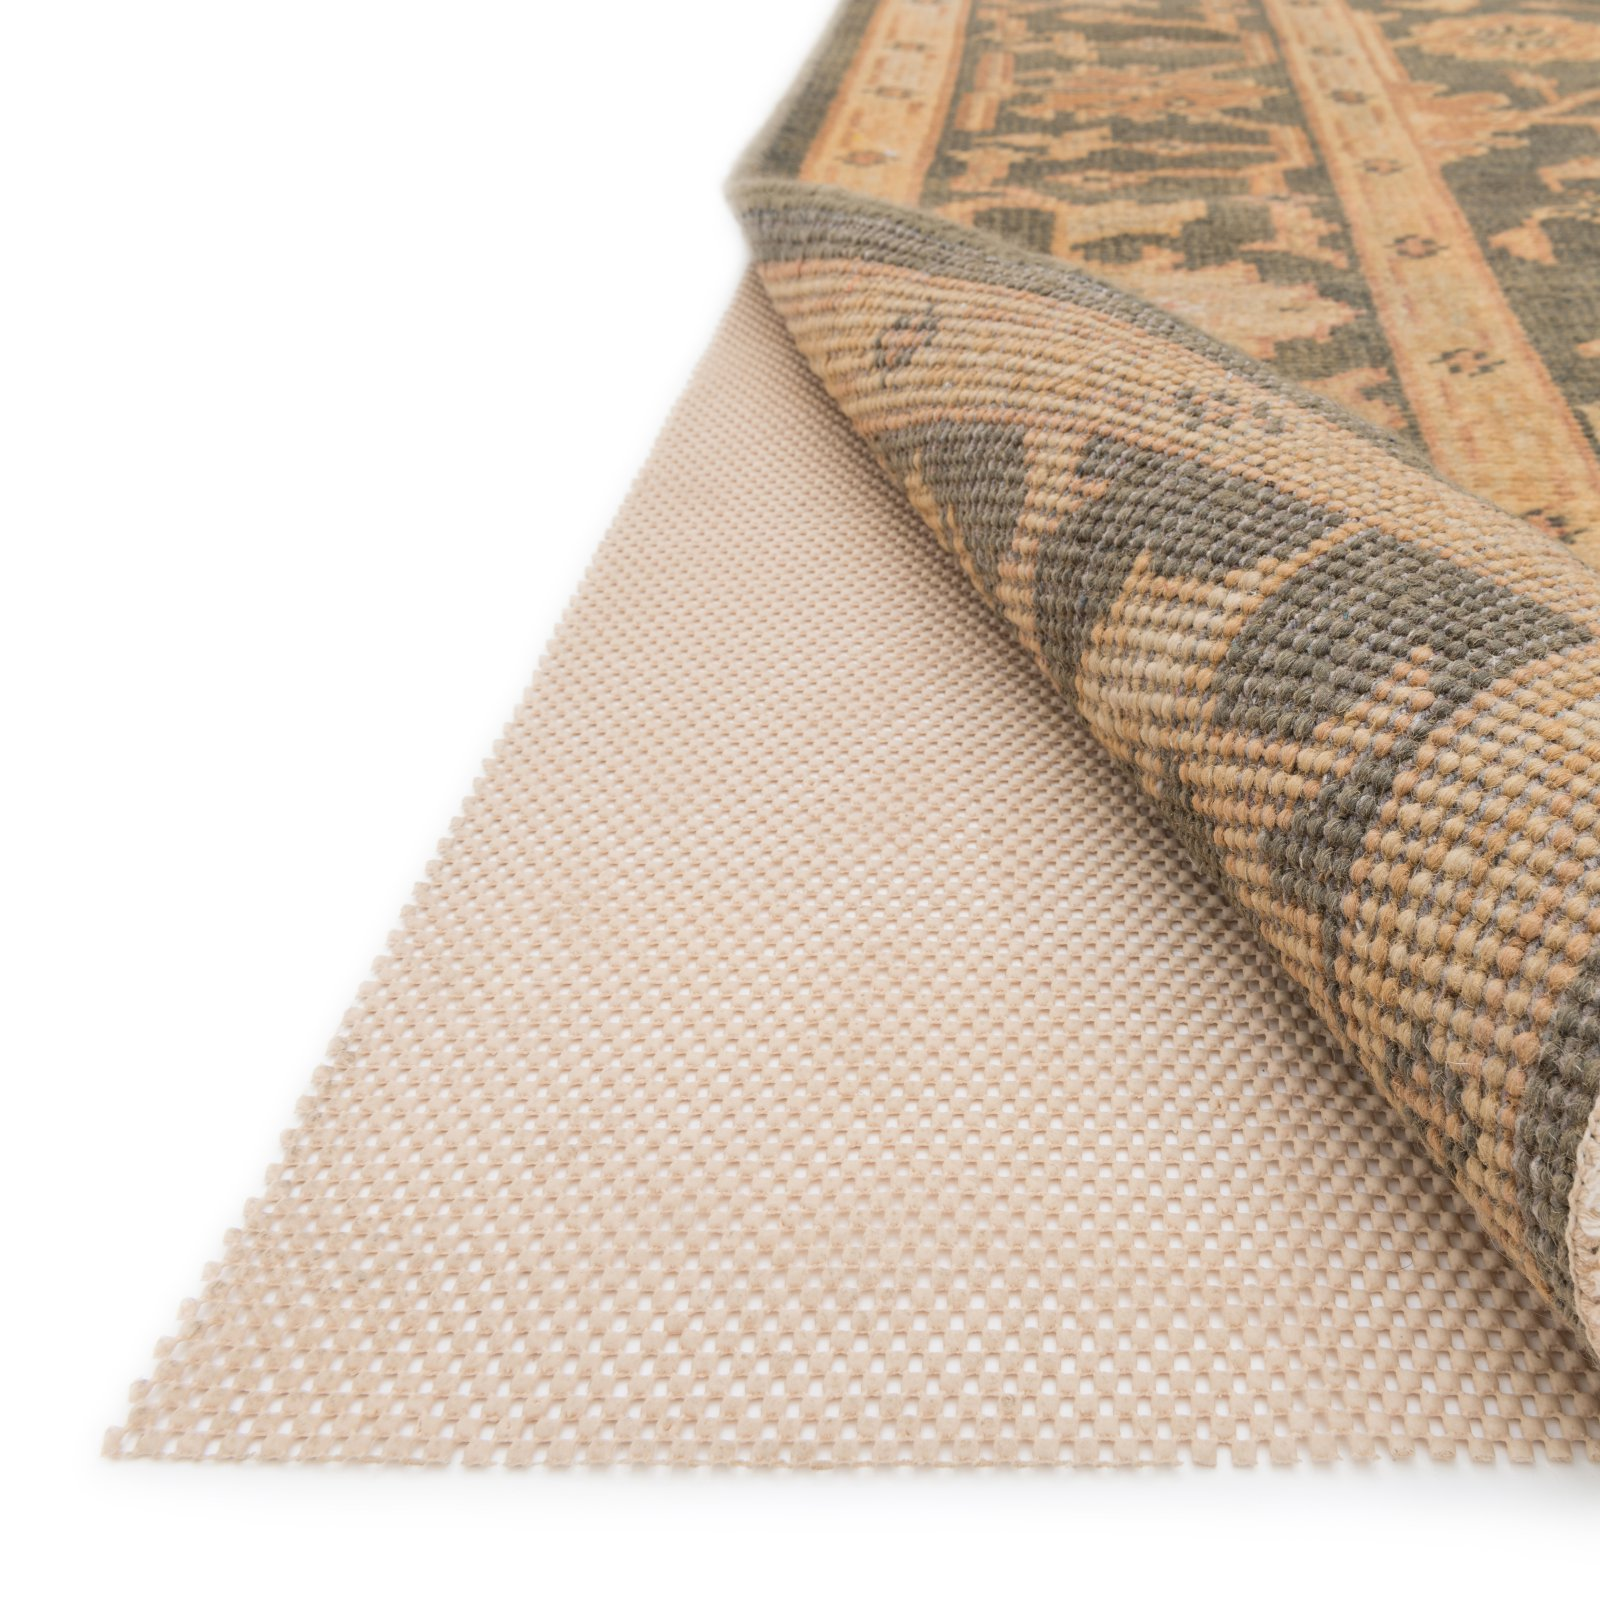 Loloi Premium Grip Rug Pad by Loloi Rugs